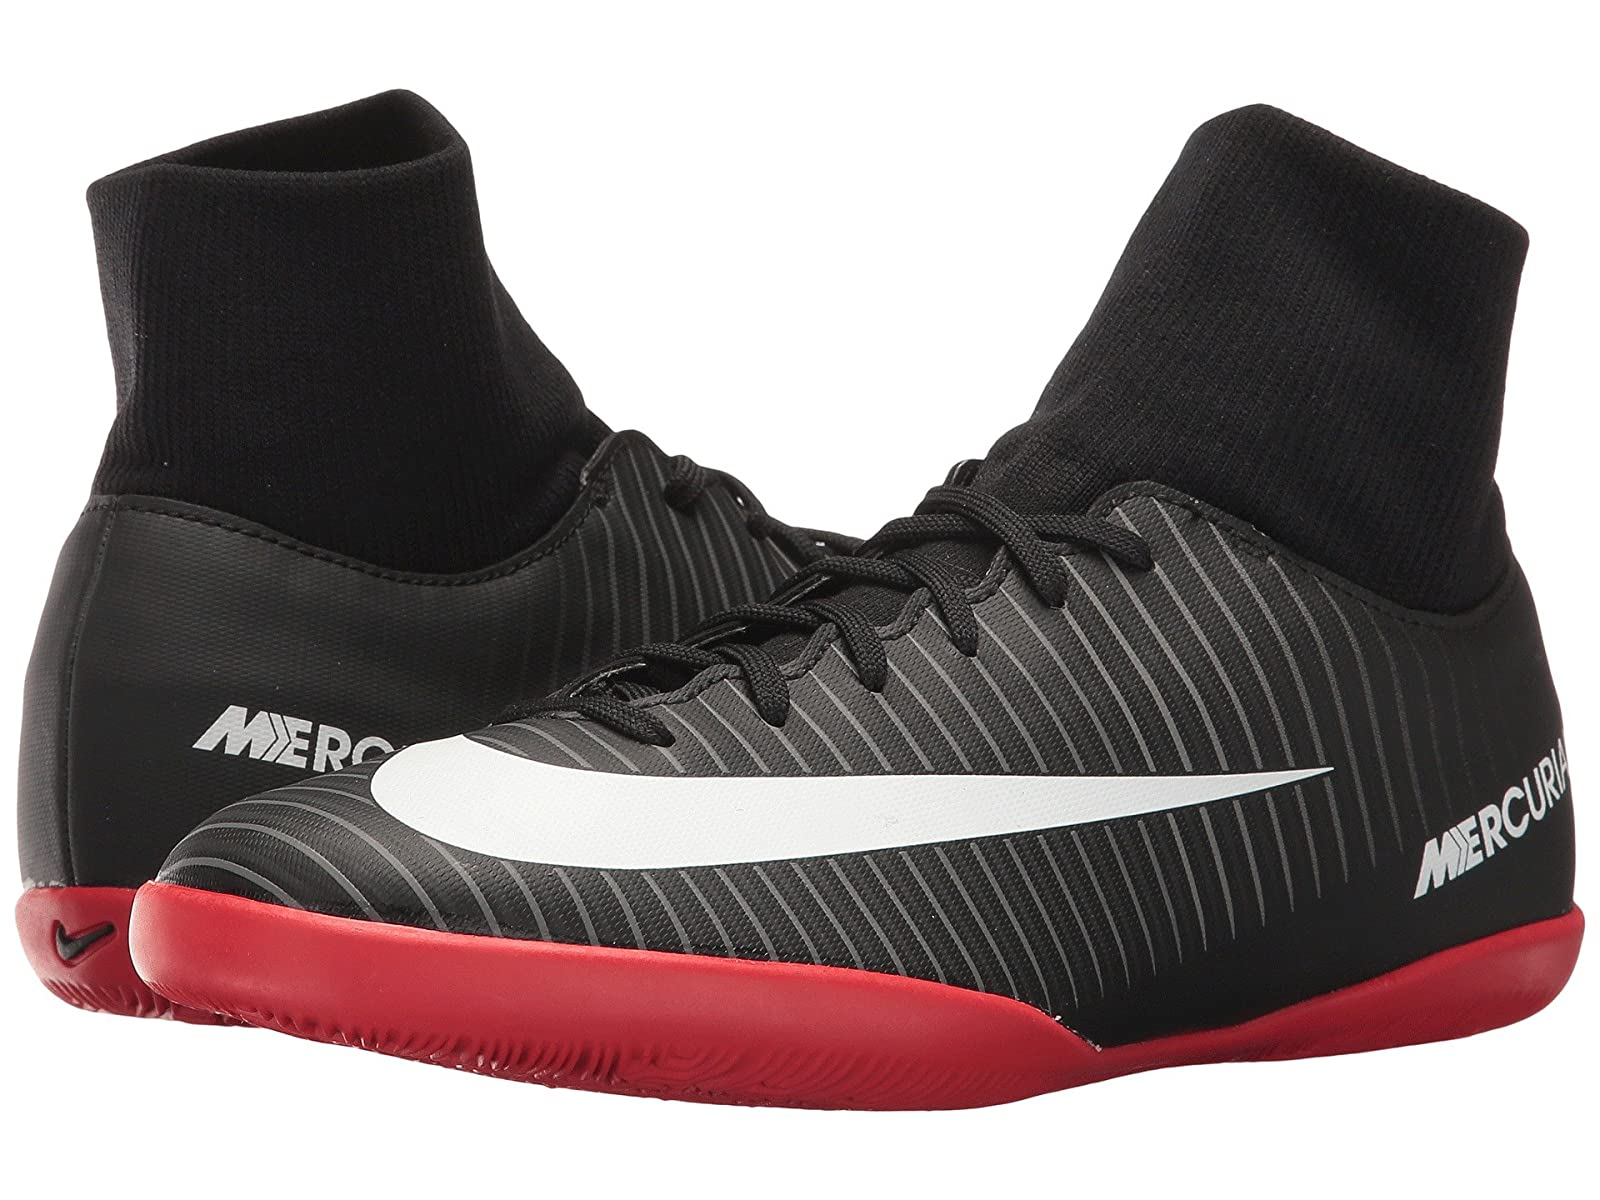 Nike Kids MercurialX Victory VI Dynamic Fit Indoor Competition Soccer Boot (Little Kid/Big Kid)Cheap and distinctive eye-catching shoes